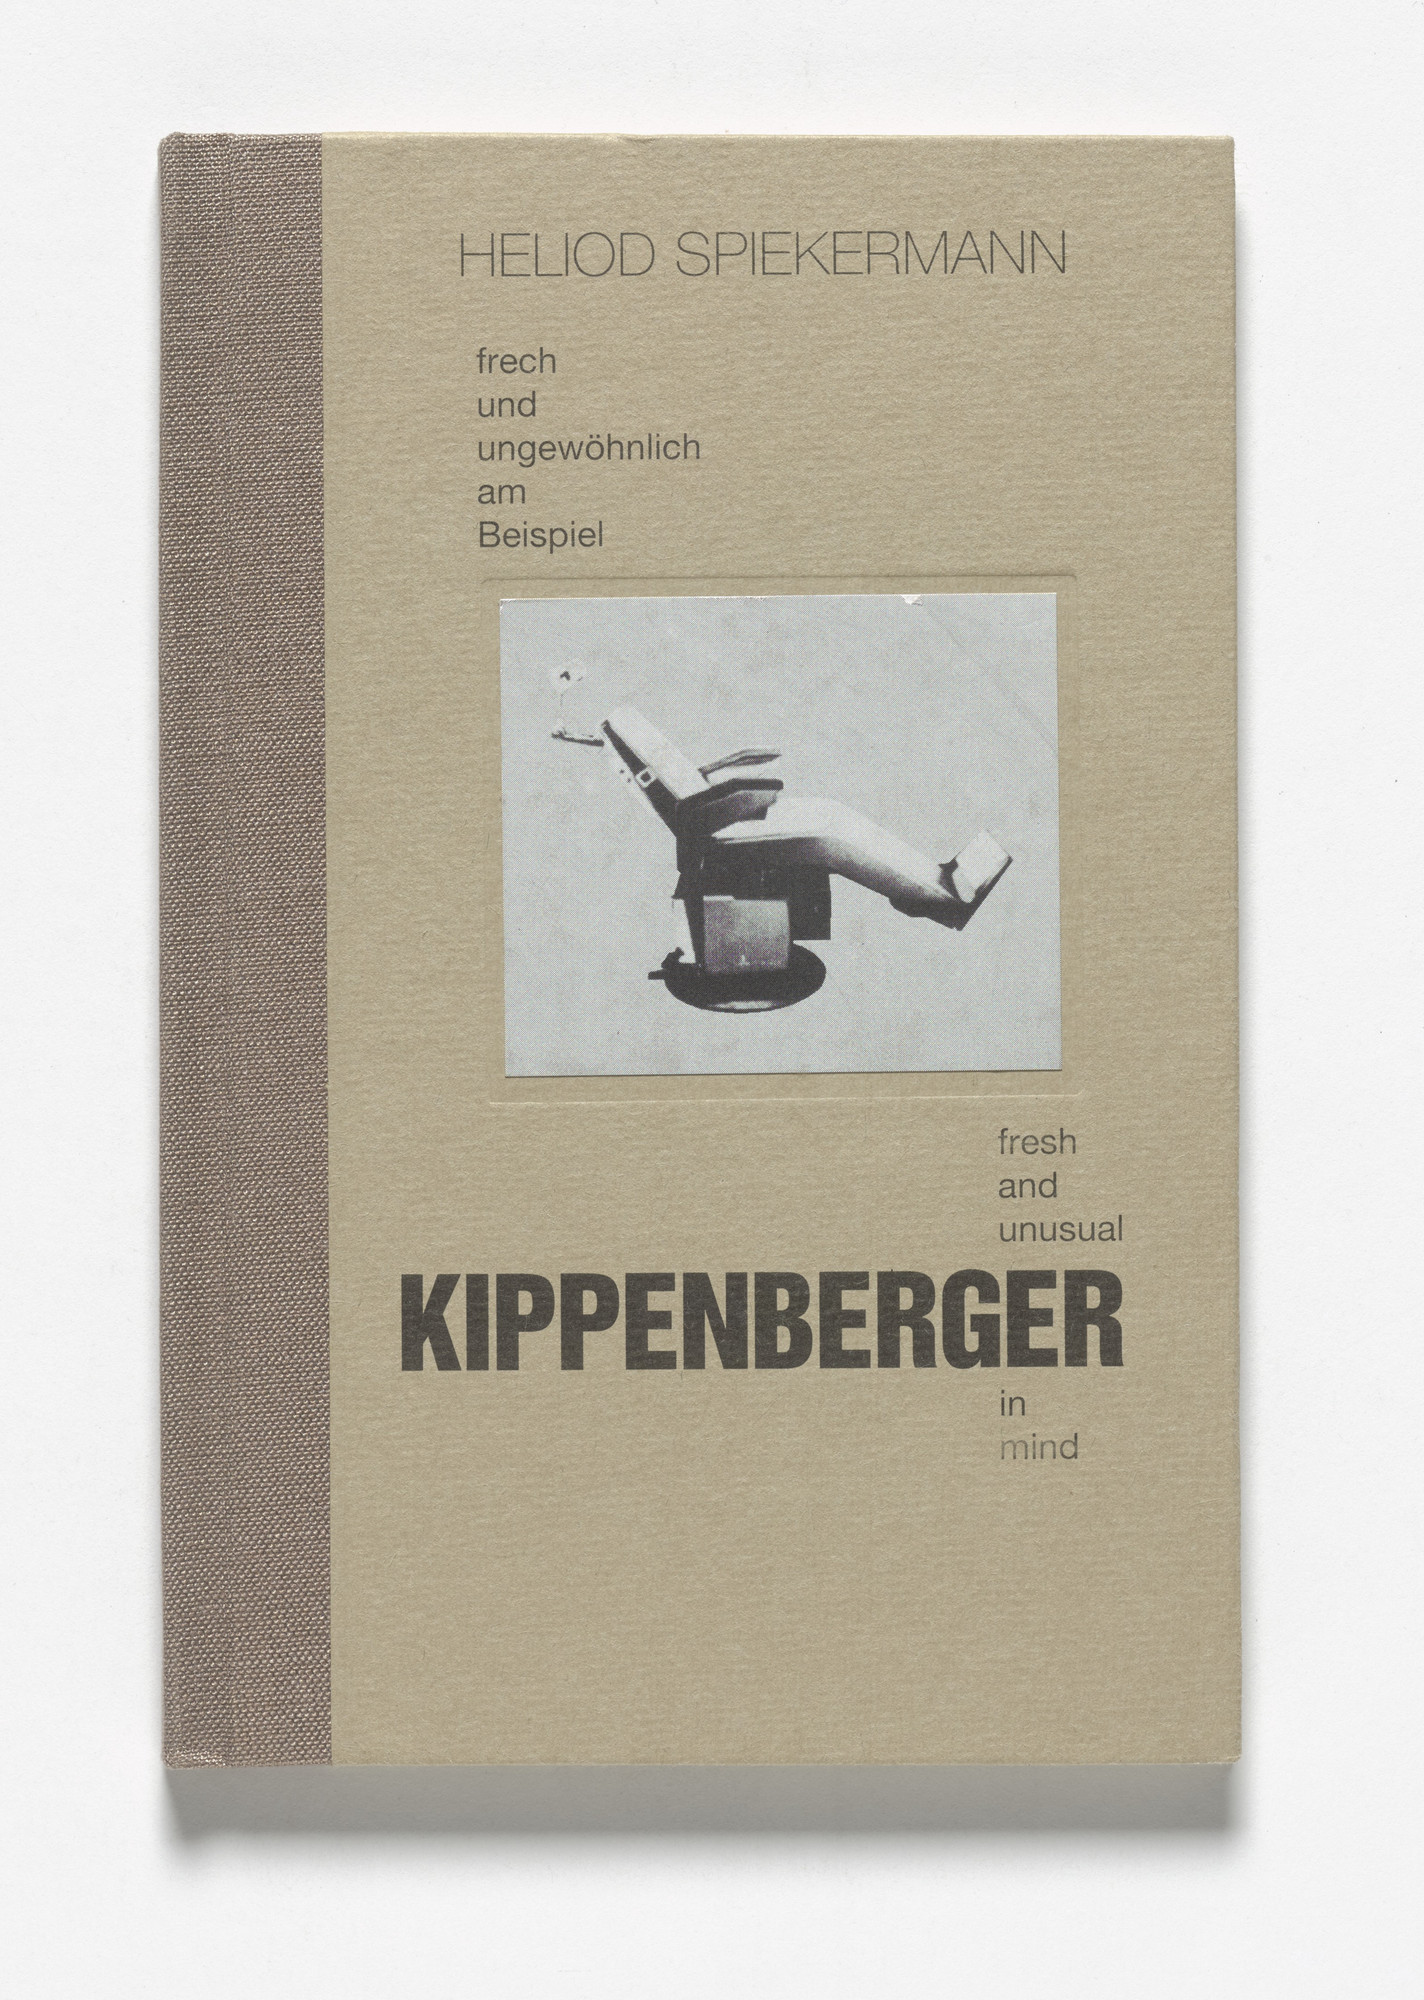 Martin Kippenberger. Heliod Spiekermann: Frech Und Ungewoehnlich Am Beispiel Kippenberger | Fresh And Unusual Kippenberger In Mind,. 1994